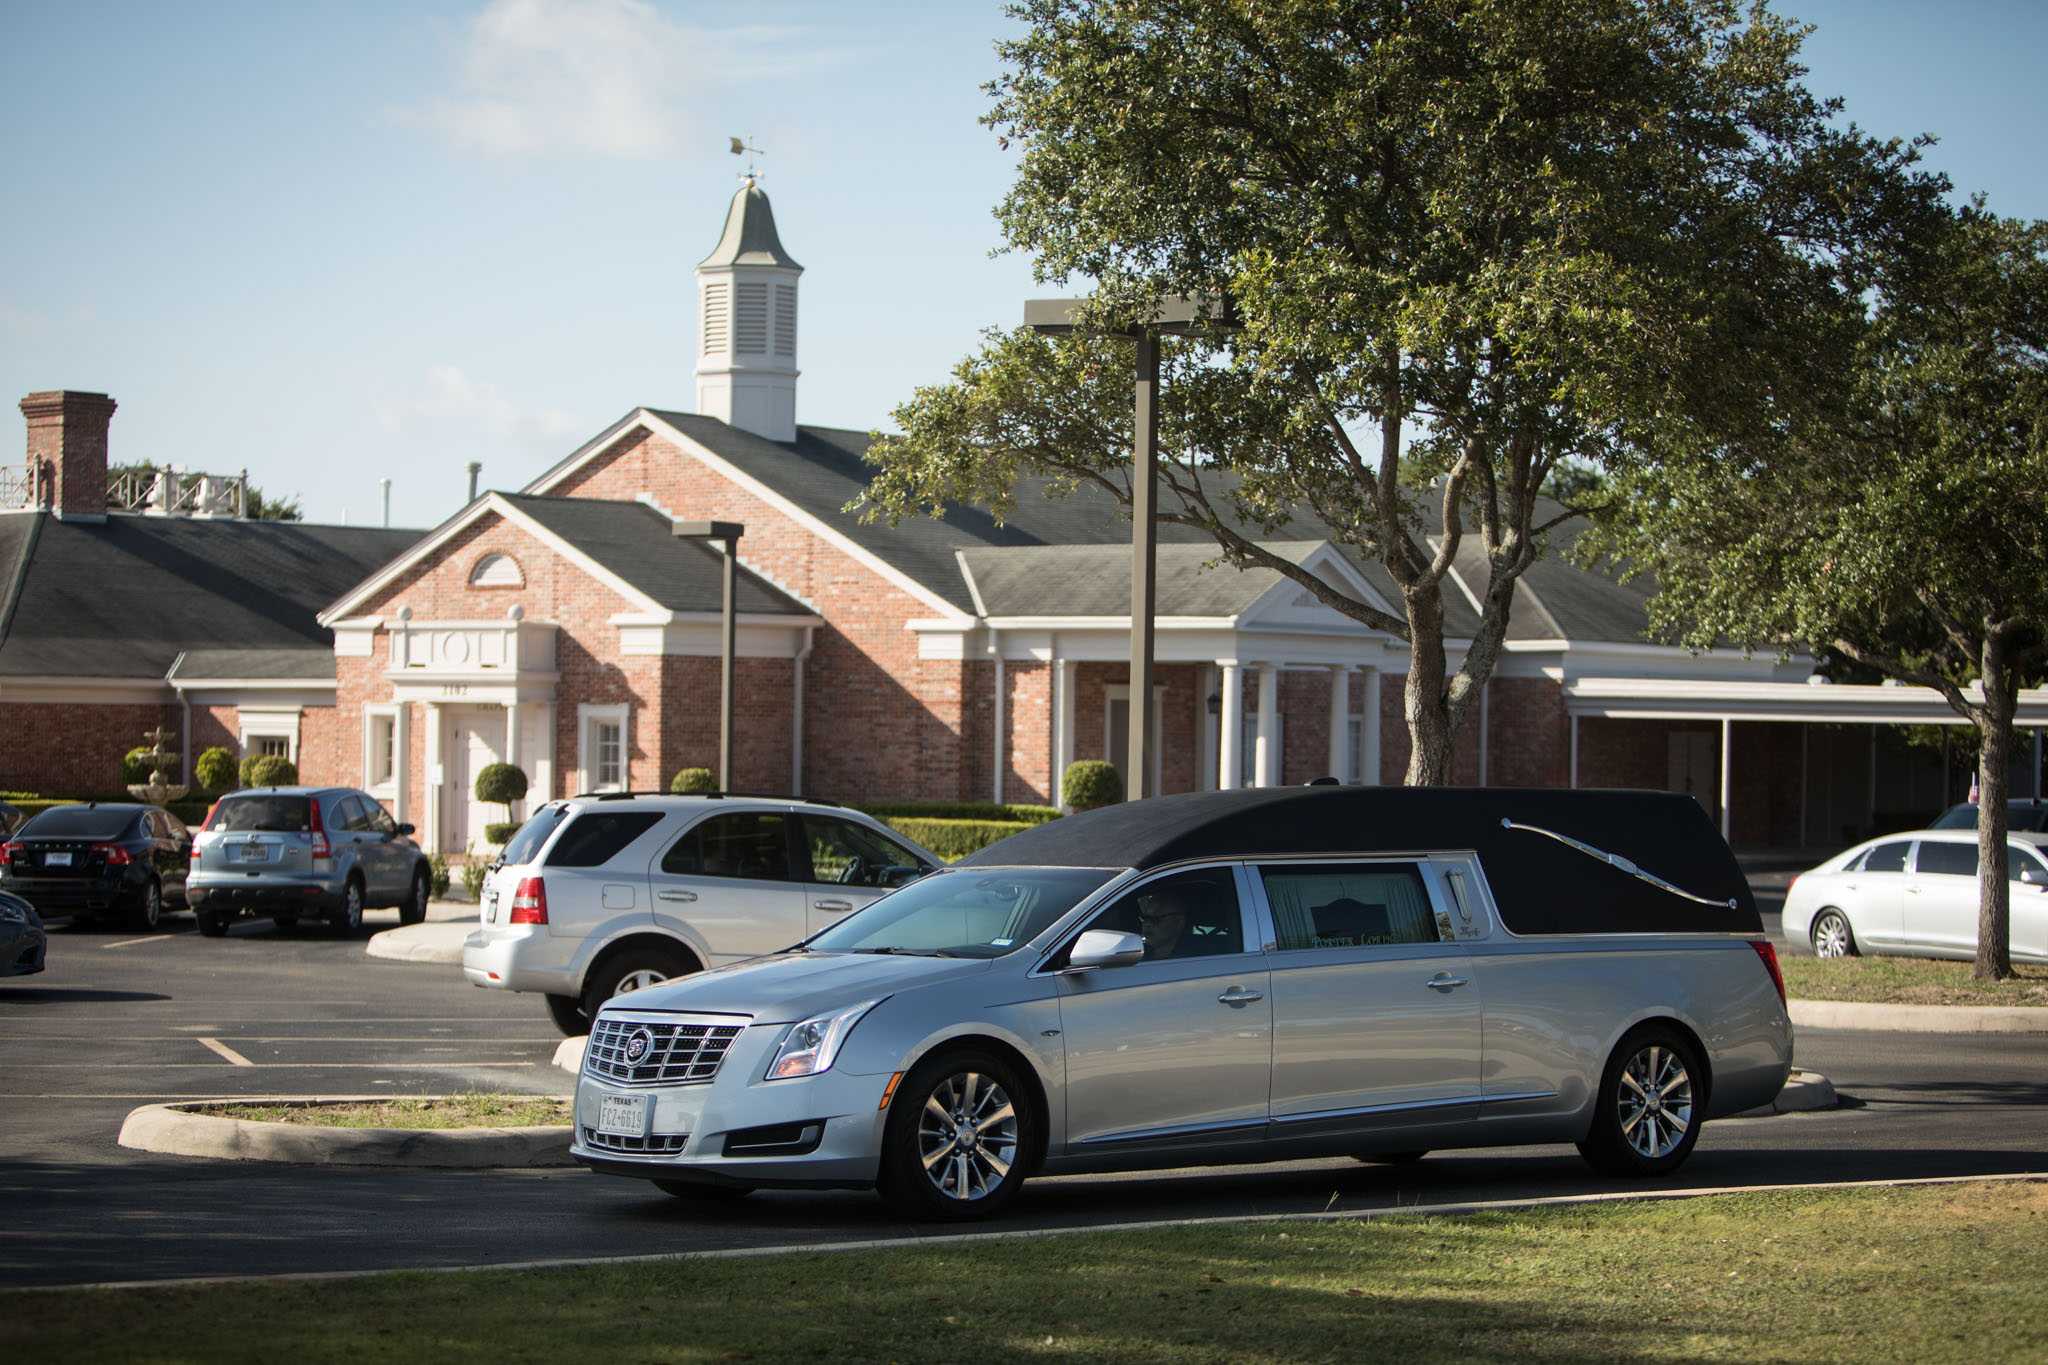 A hearse with deceased Jaime Martinez leaves in a funeral procession from Porter Loring Mortuary North.